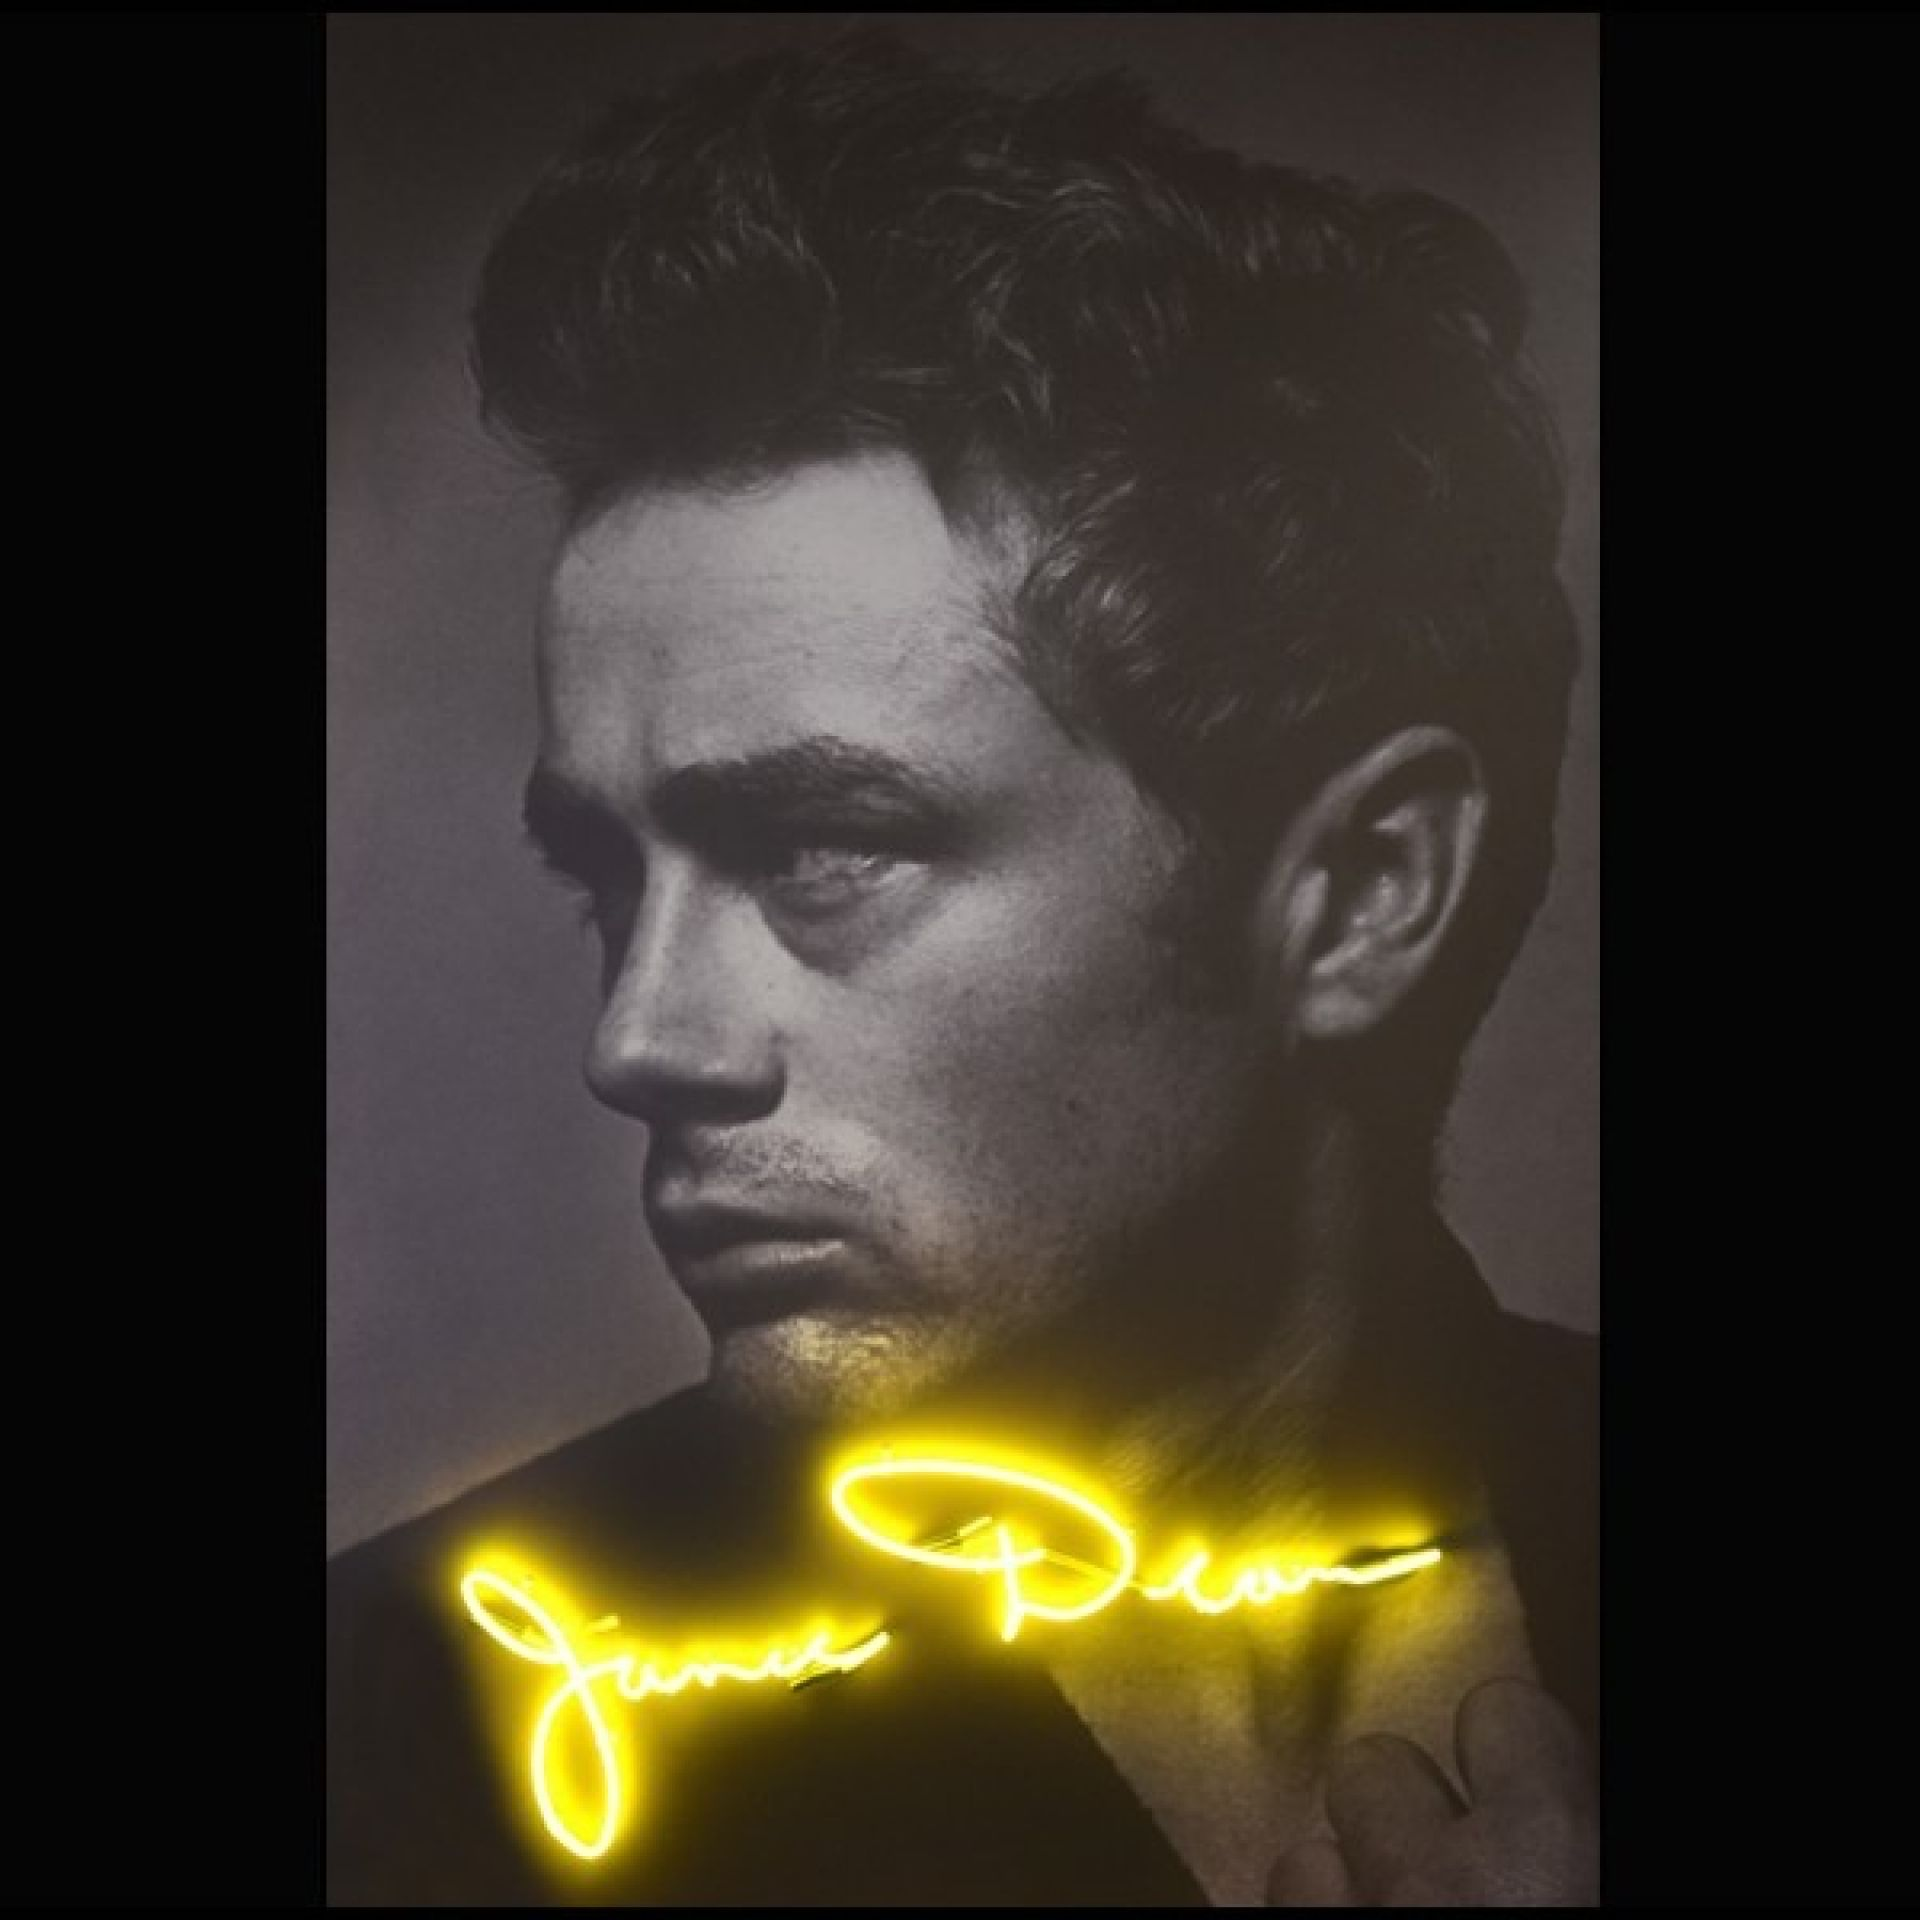 WALL DECORATION PHOTOGRAPHY ON DIBOND YELLOW TUBE LIGHTING NEON PC-JAMES DEAN